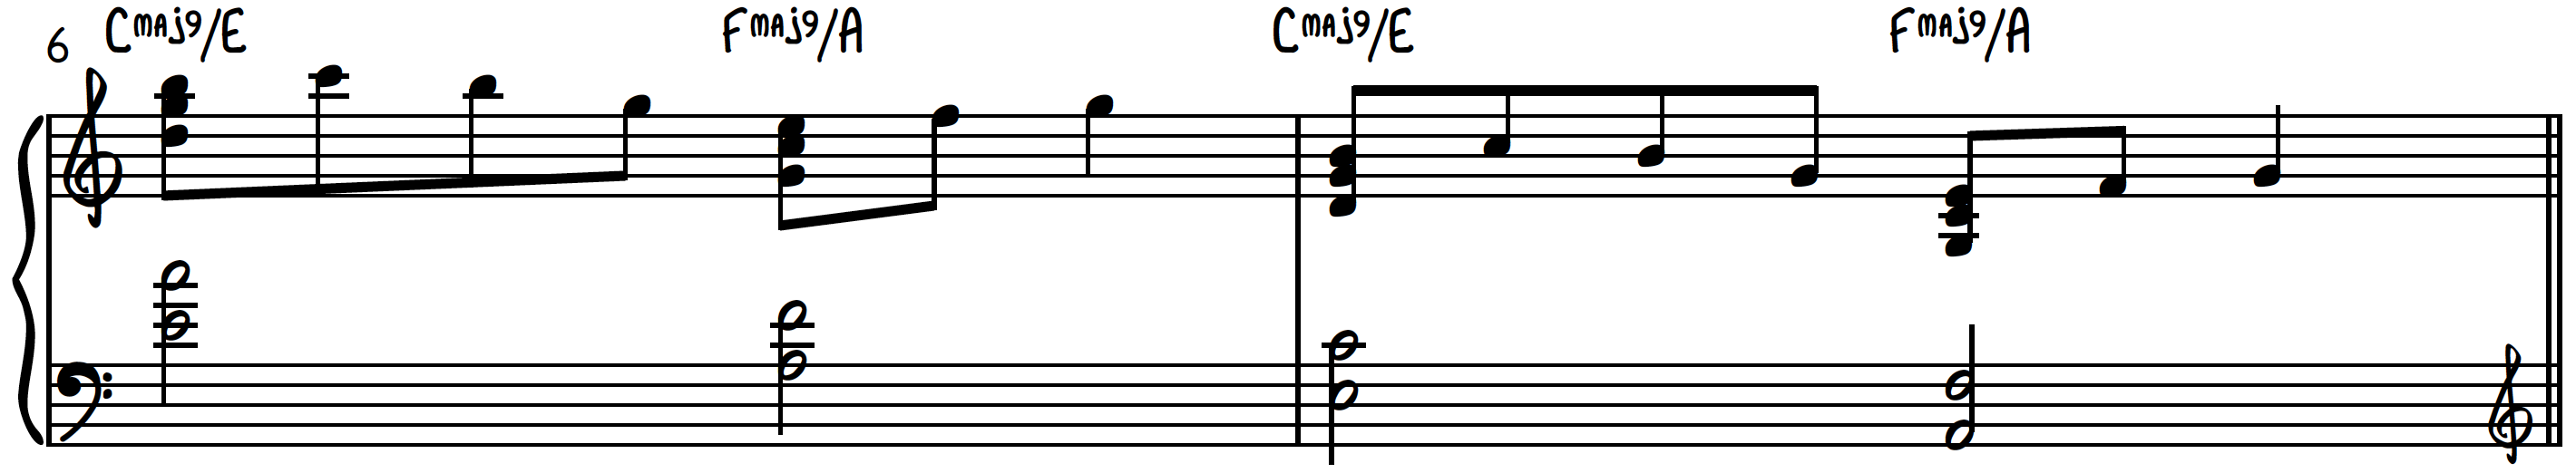 Example 2 - Heaven Chords in a contemporary piano chord progression - useful as an intro